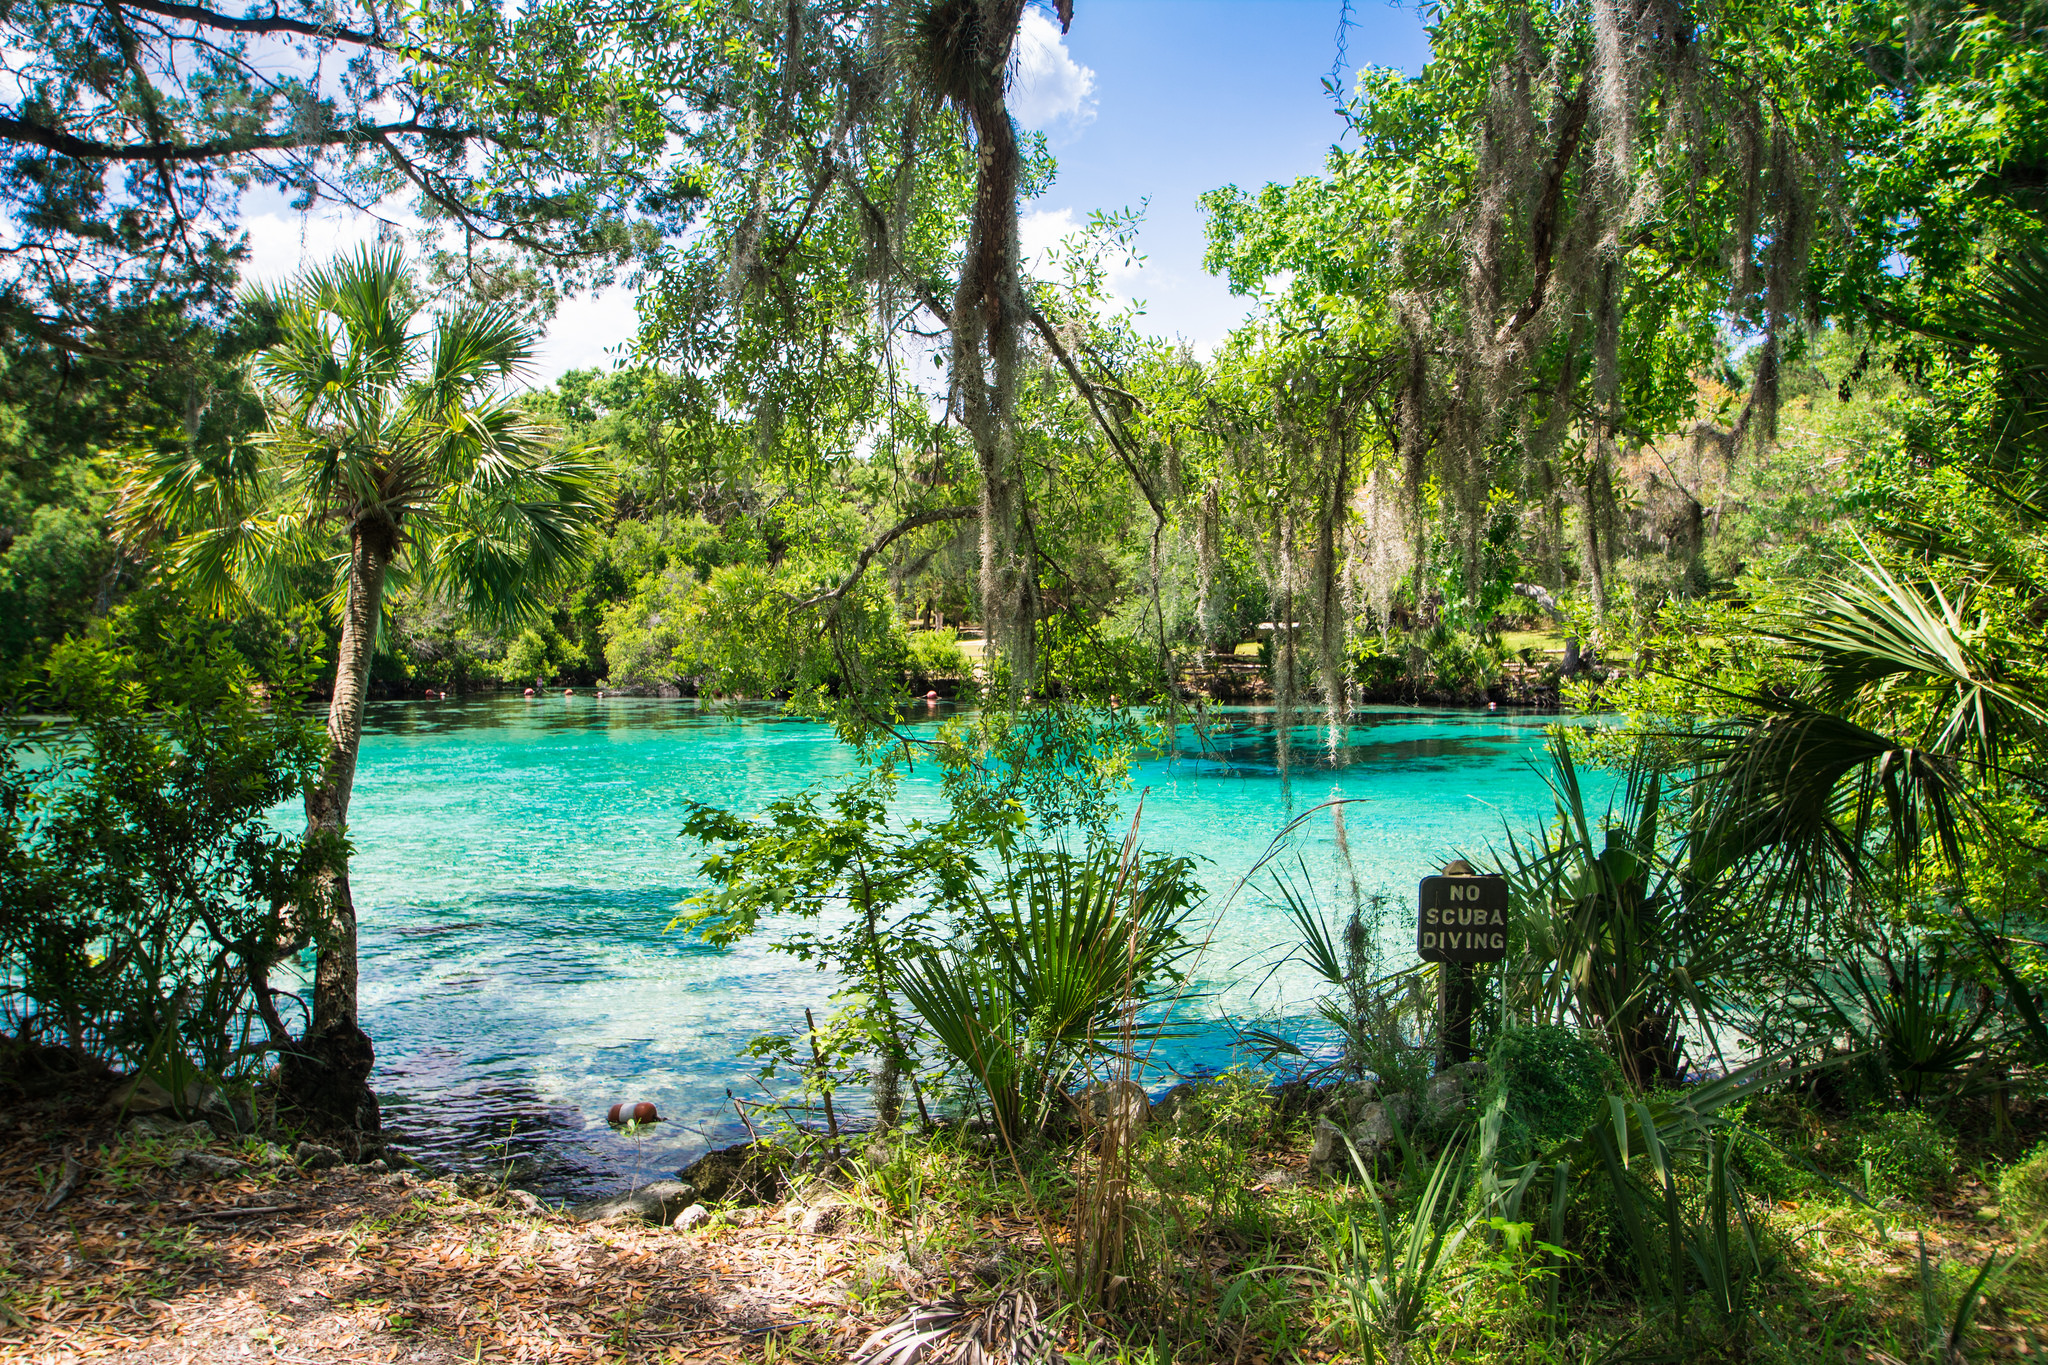 silver glen springs is the perfect natural swimming hole